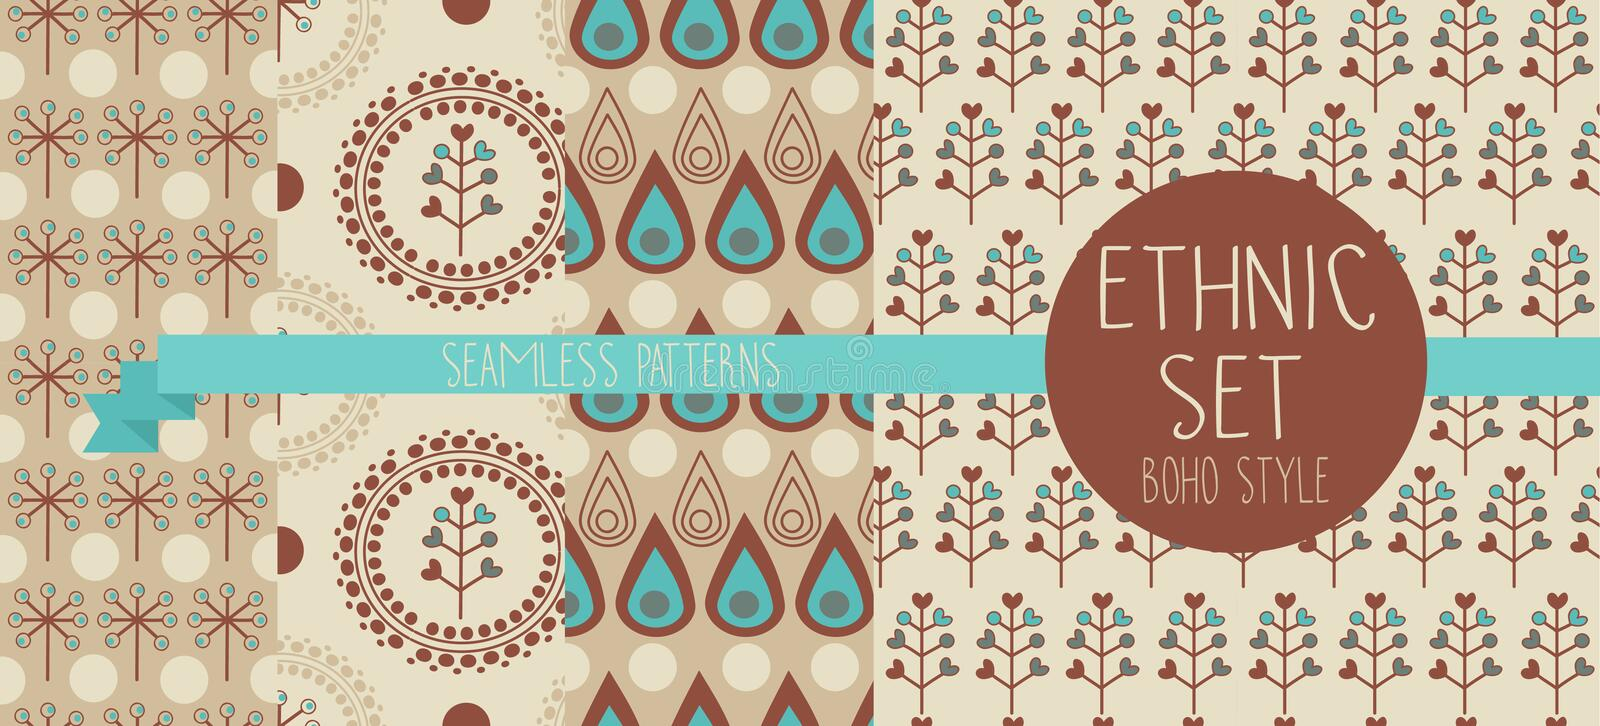 Set of abstract seamless patterns, drop and floral ethnic elements royalty free illustration